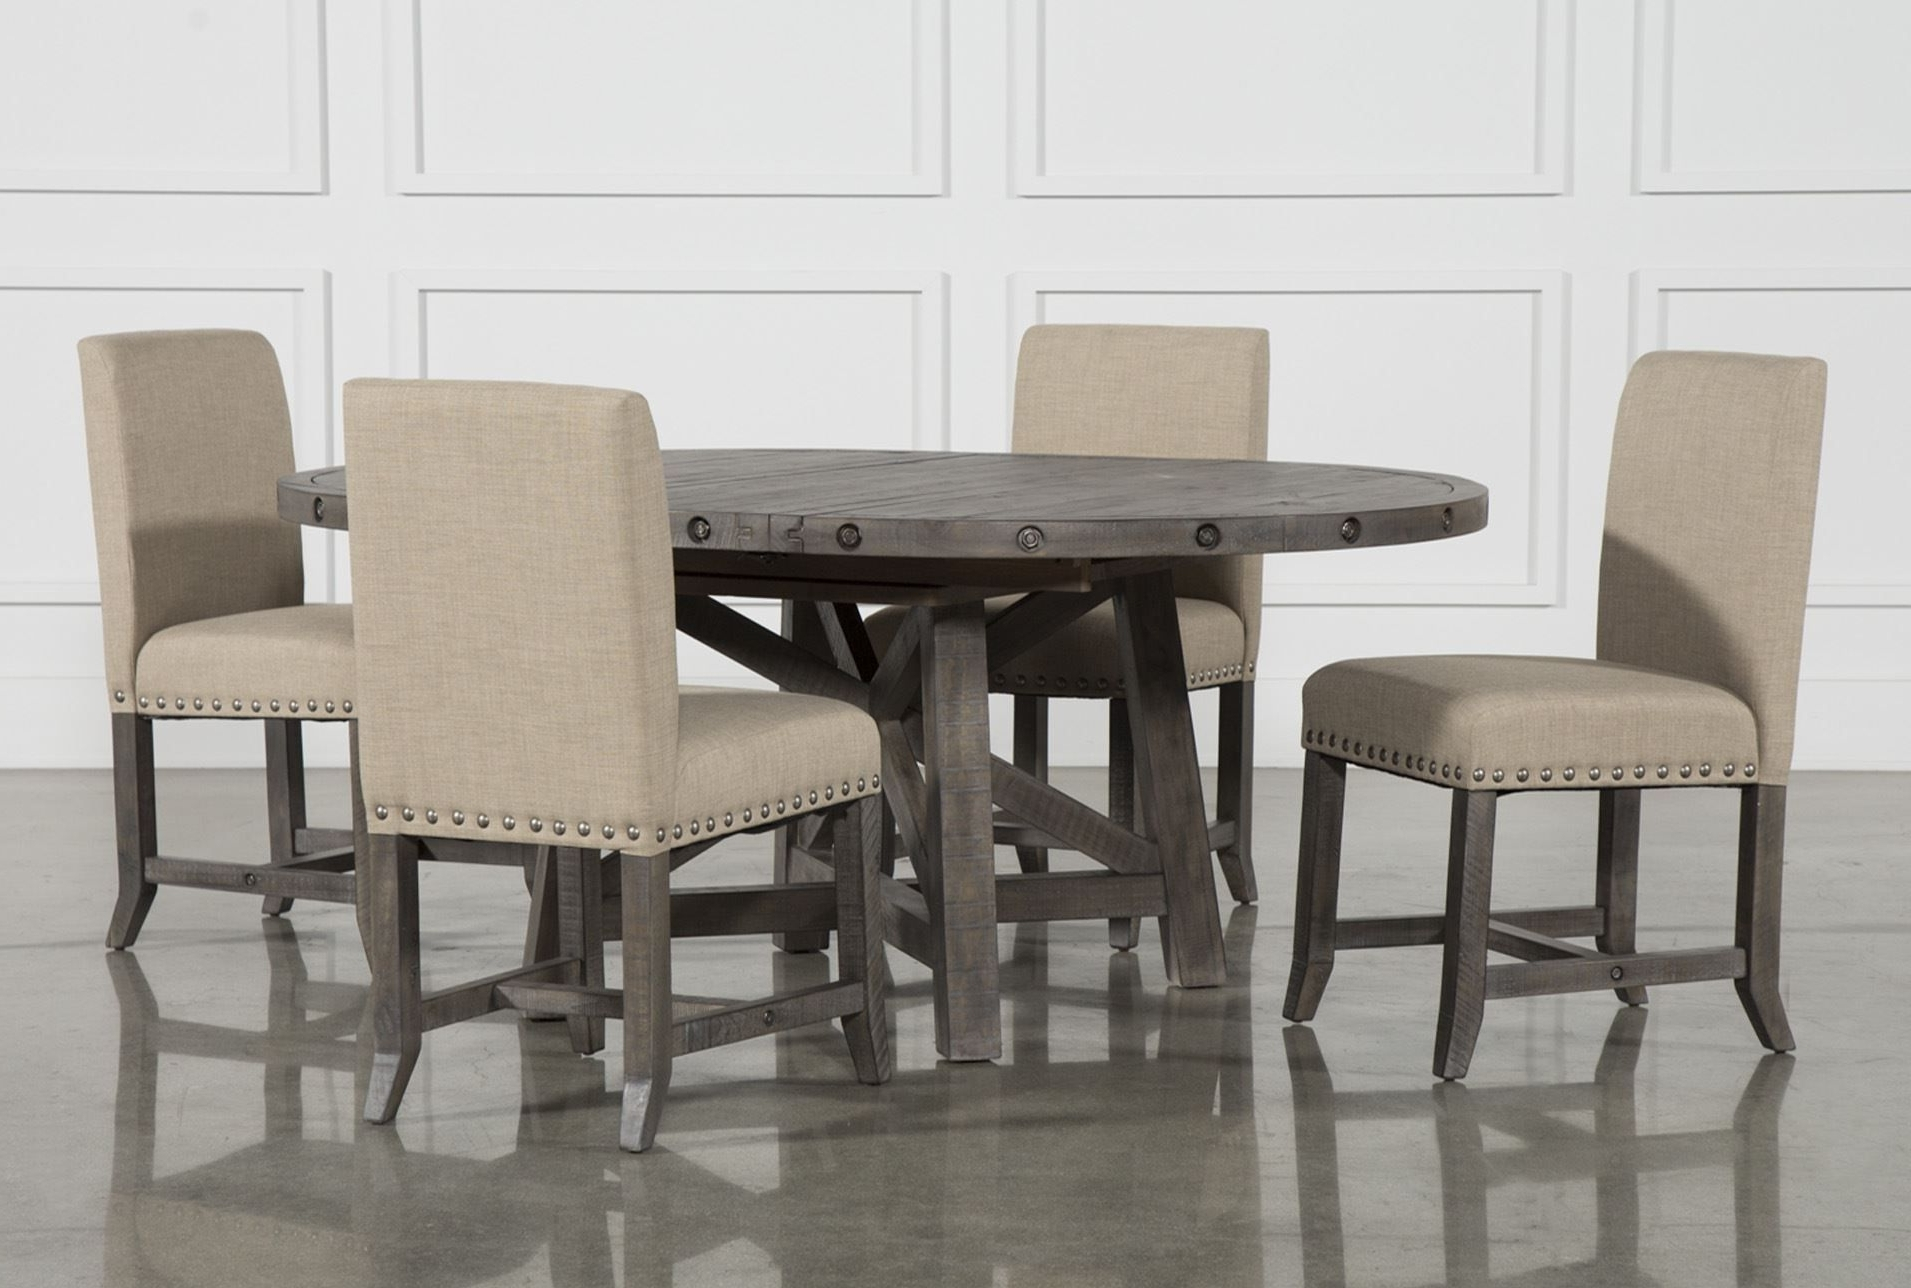 Most Recent Palazzo 7 Piece Dining Sets With Mindy Slipcovered Side Chairs Inside Jaxon Grey 5 Piece Round Extension Dining Set W/upholstered Chairs (Gallery 8 of 25)